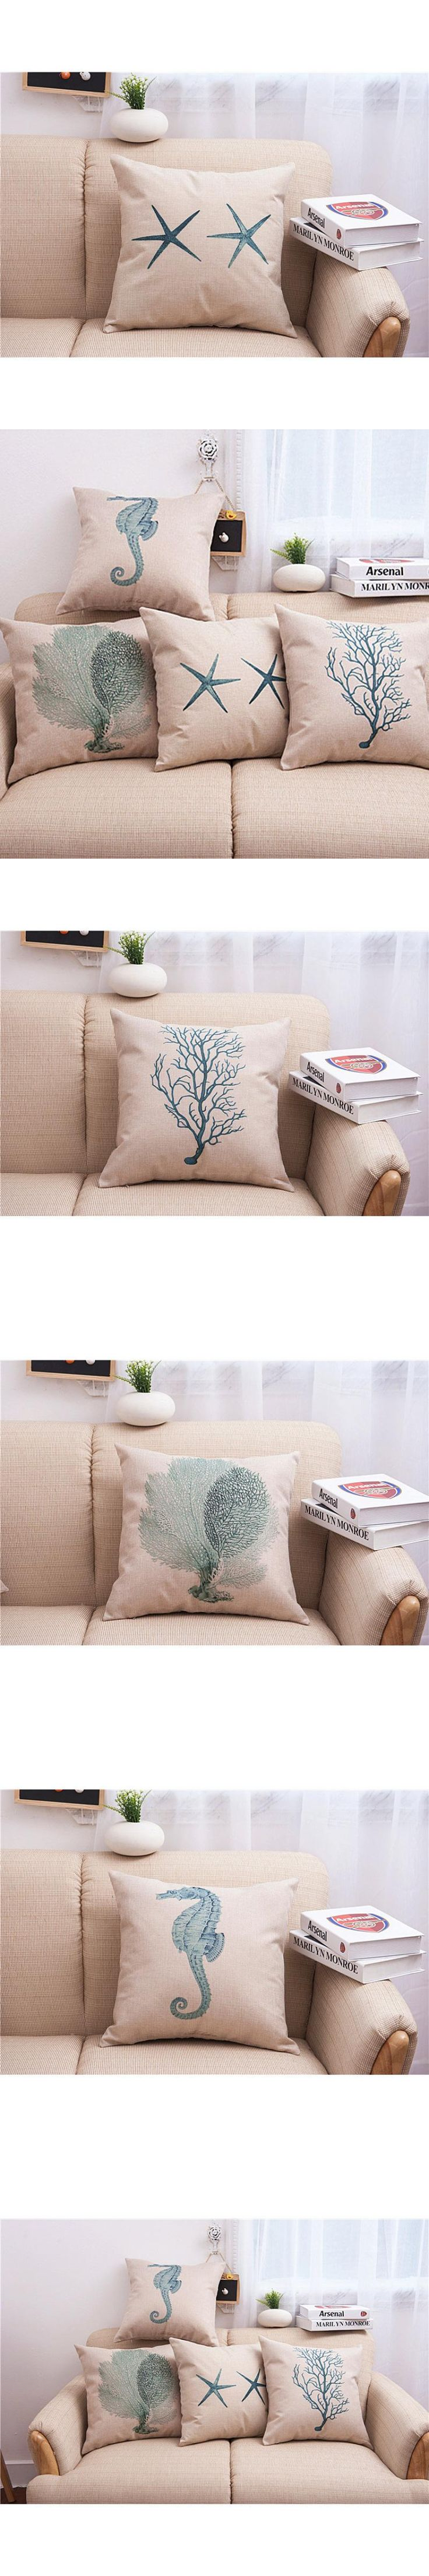 45*45cm Cushion Cover Pillow Case Animal Hippocampus Seaweed Starfish Cushion Case Vintage Pillow Linen Sea Grass Cover